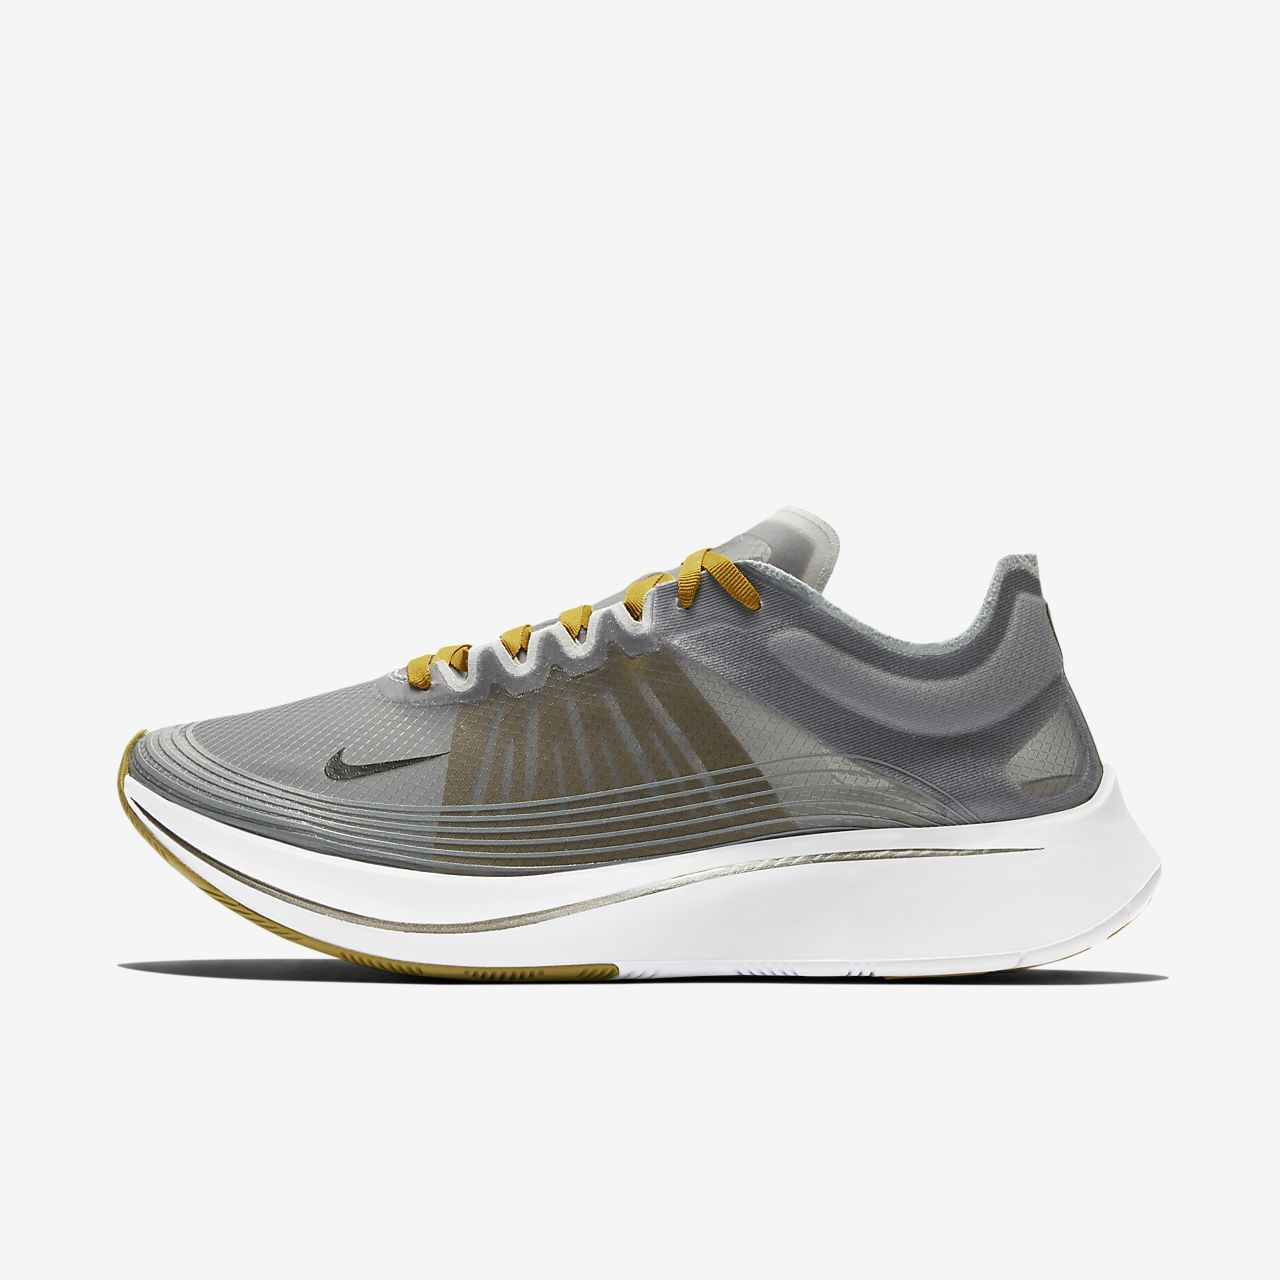 a289f18bec1 Nike Zoom Fly SP Running Shoe. Nike.com